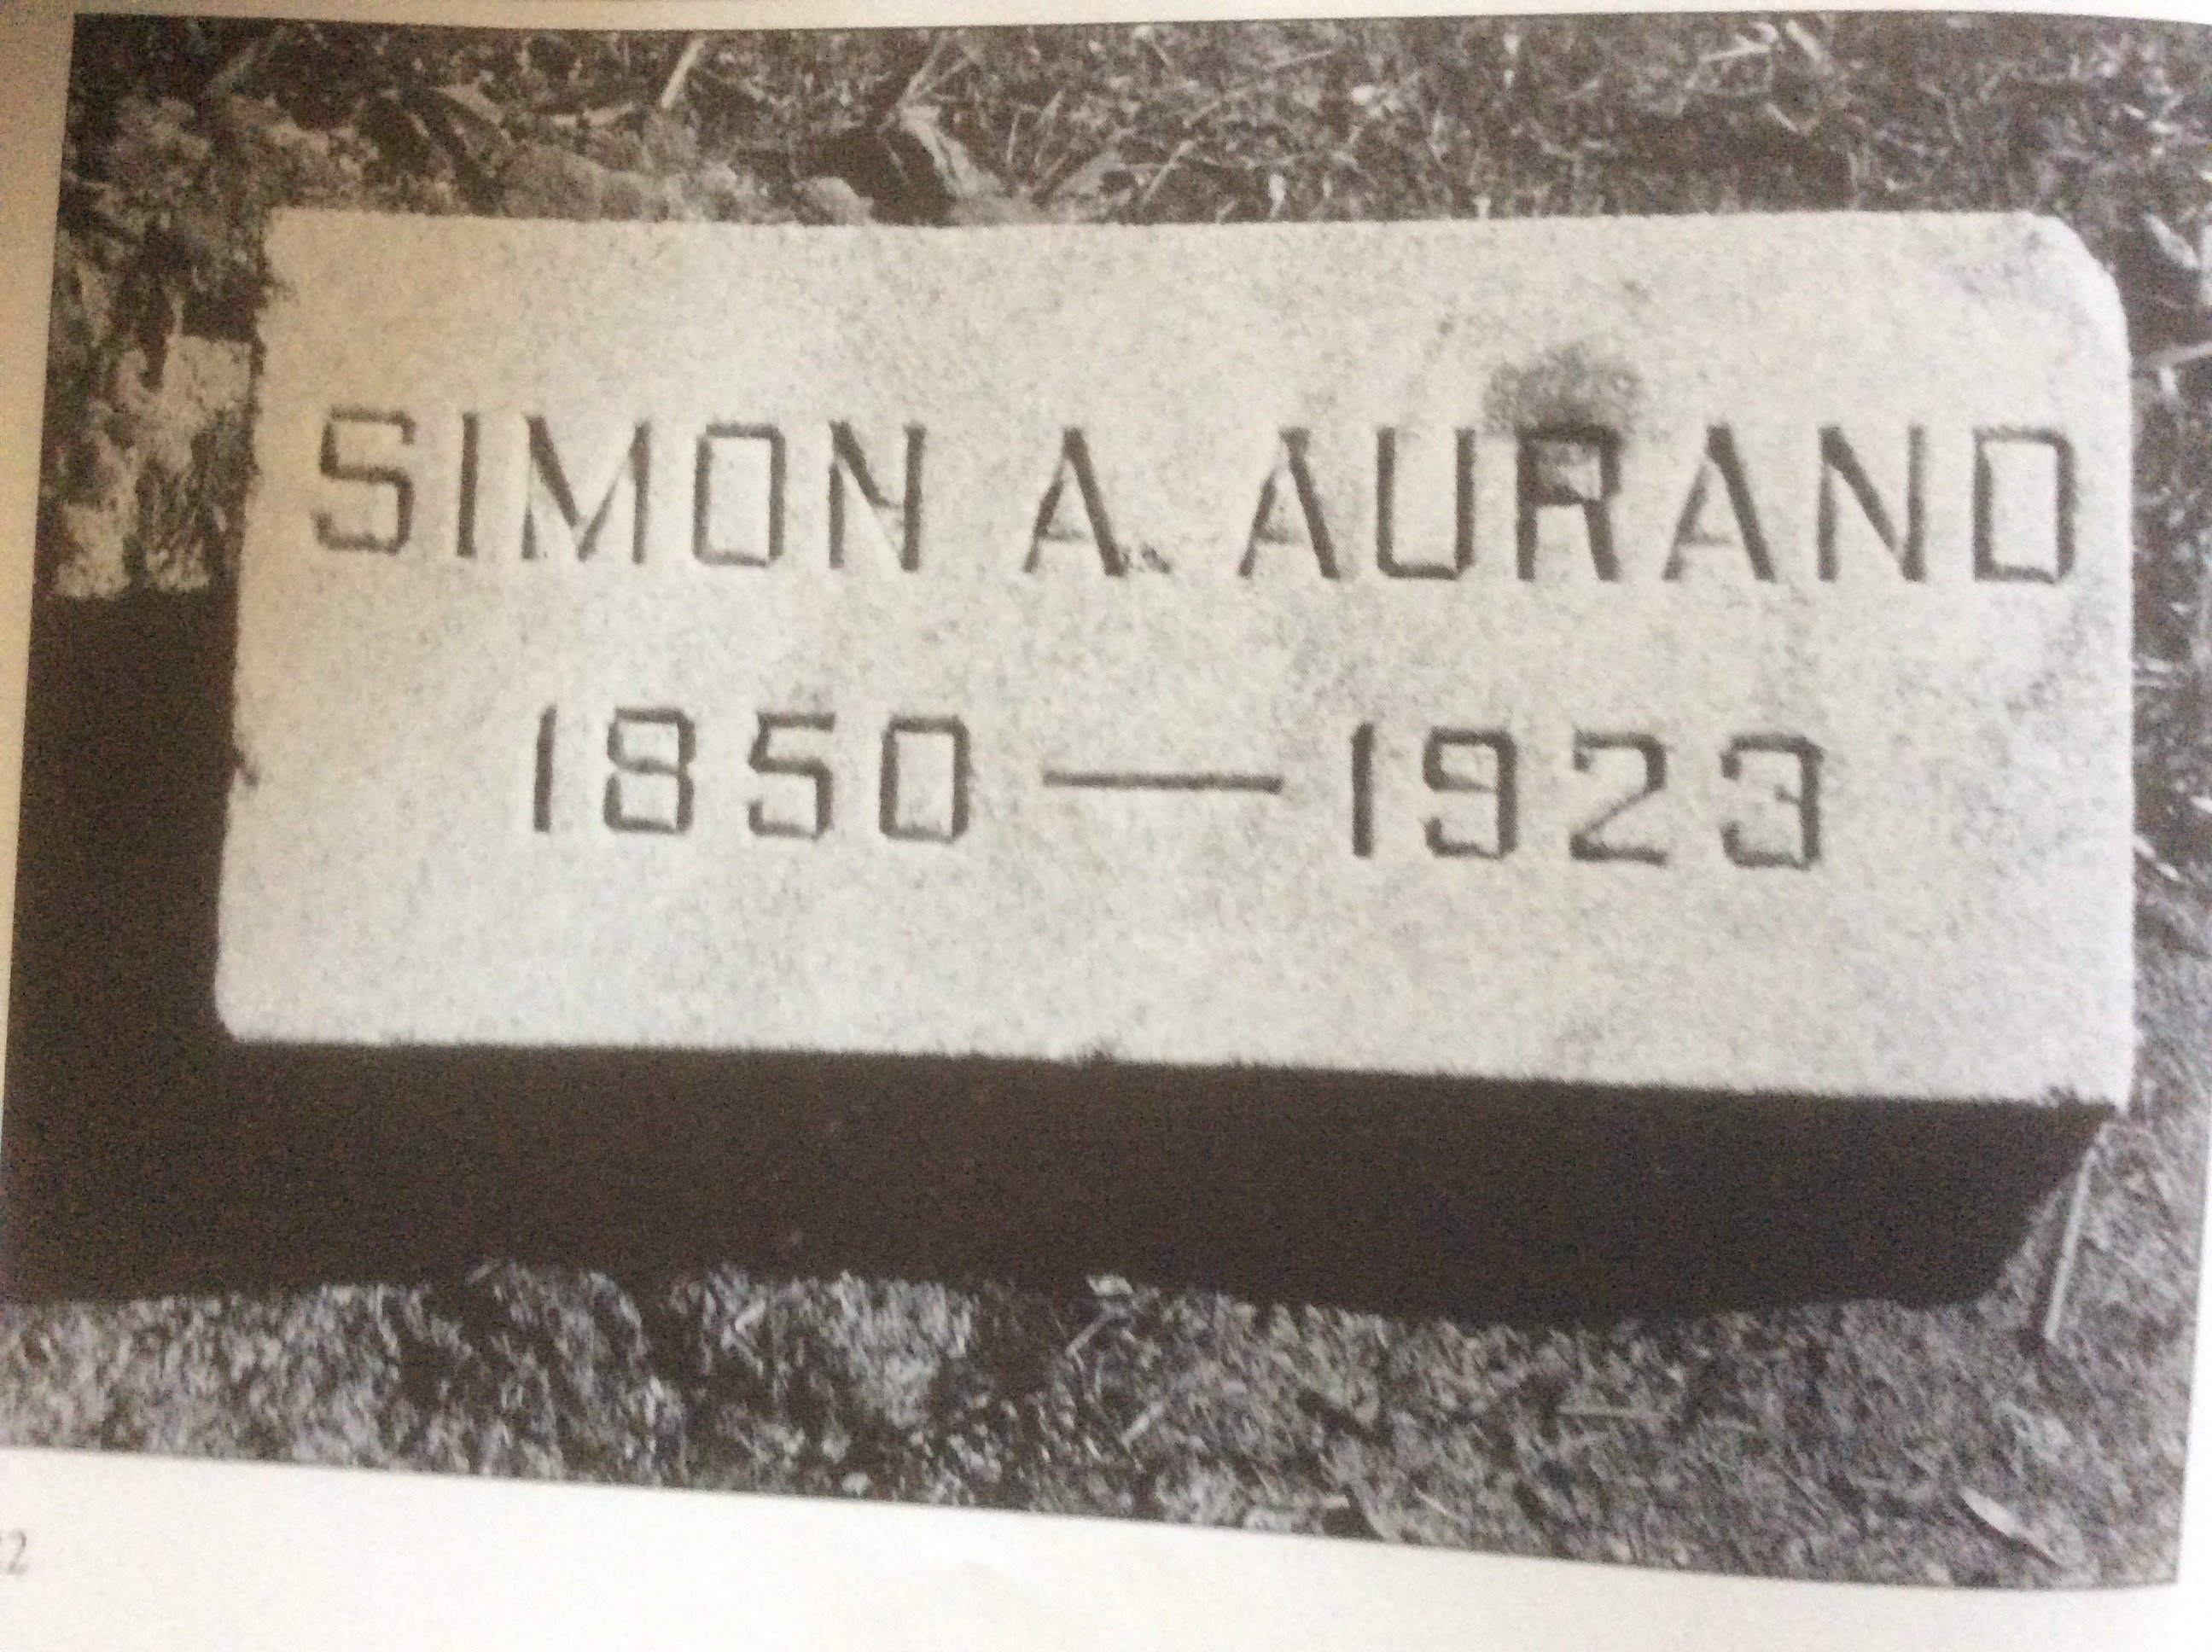 Grave site of Simon A. Aurand, who lived 1850-1923.